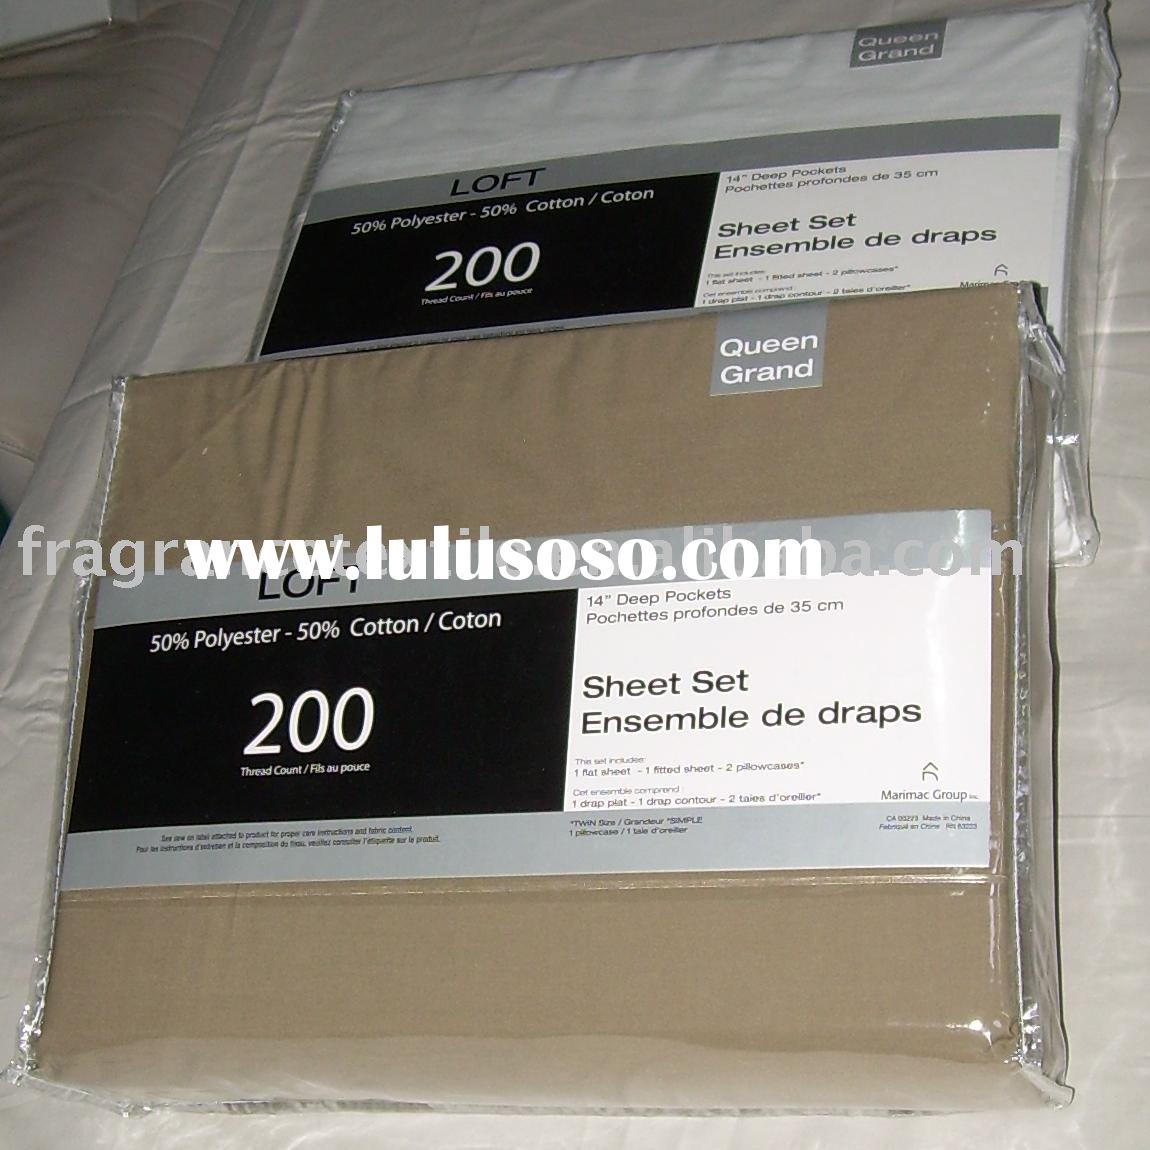 Home /Hotel Use T200 50% Cotton and 50% Polyester Sheet Set